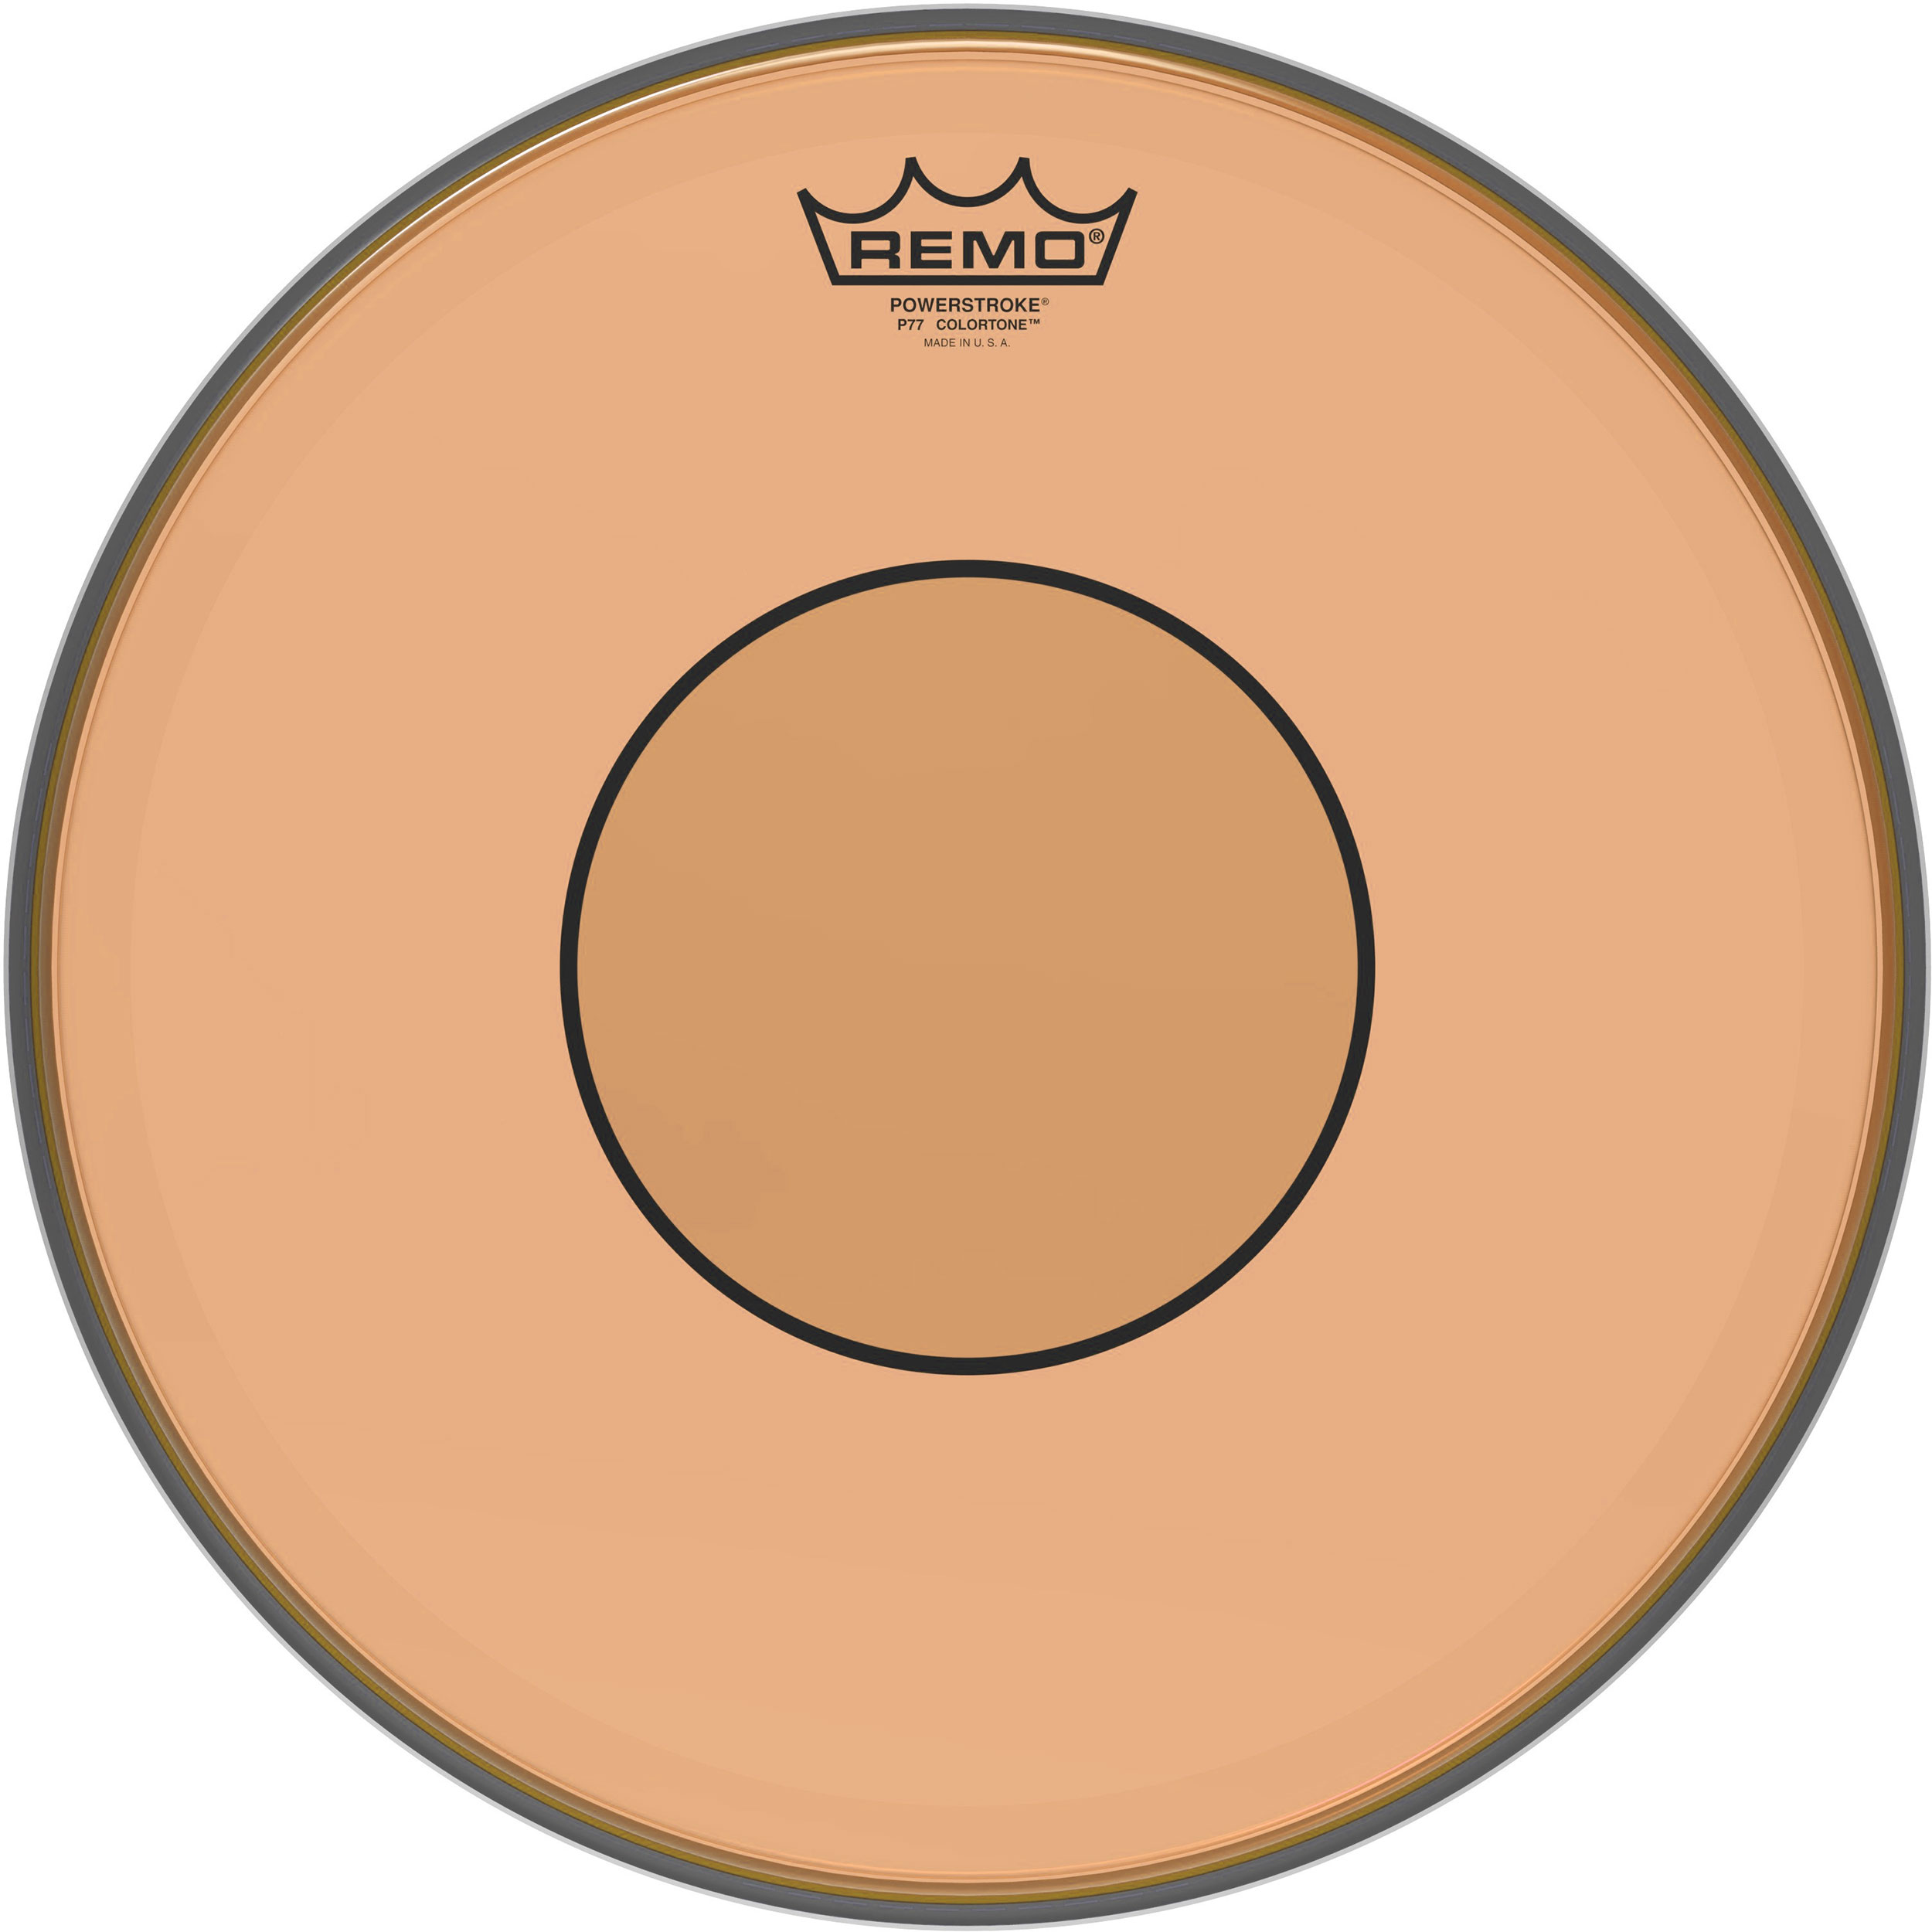 "Remo 13"" Powerstroke 77 Colortone Orange Drum Head"